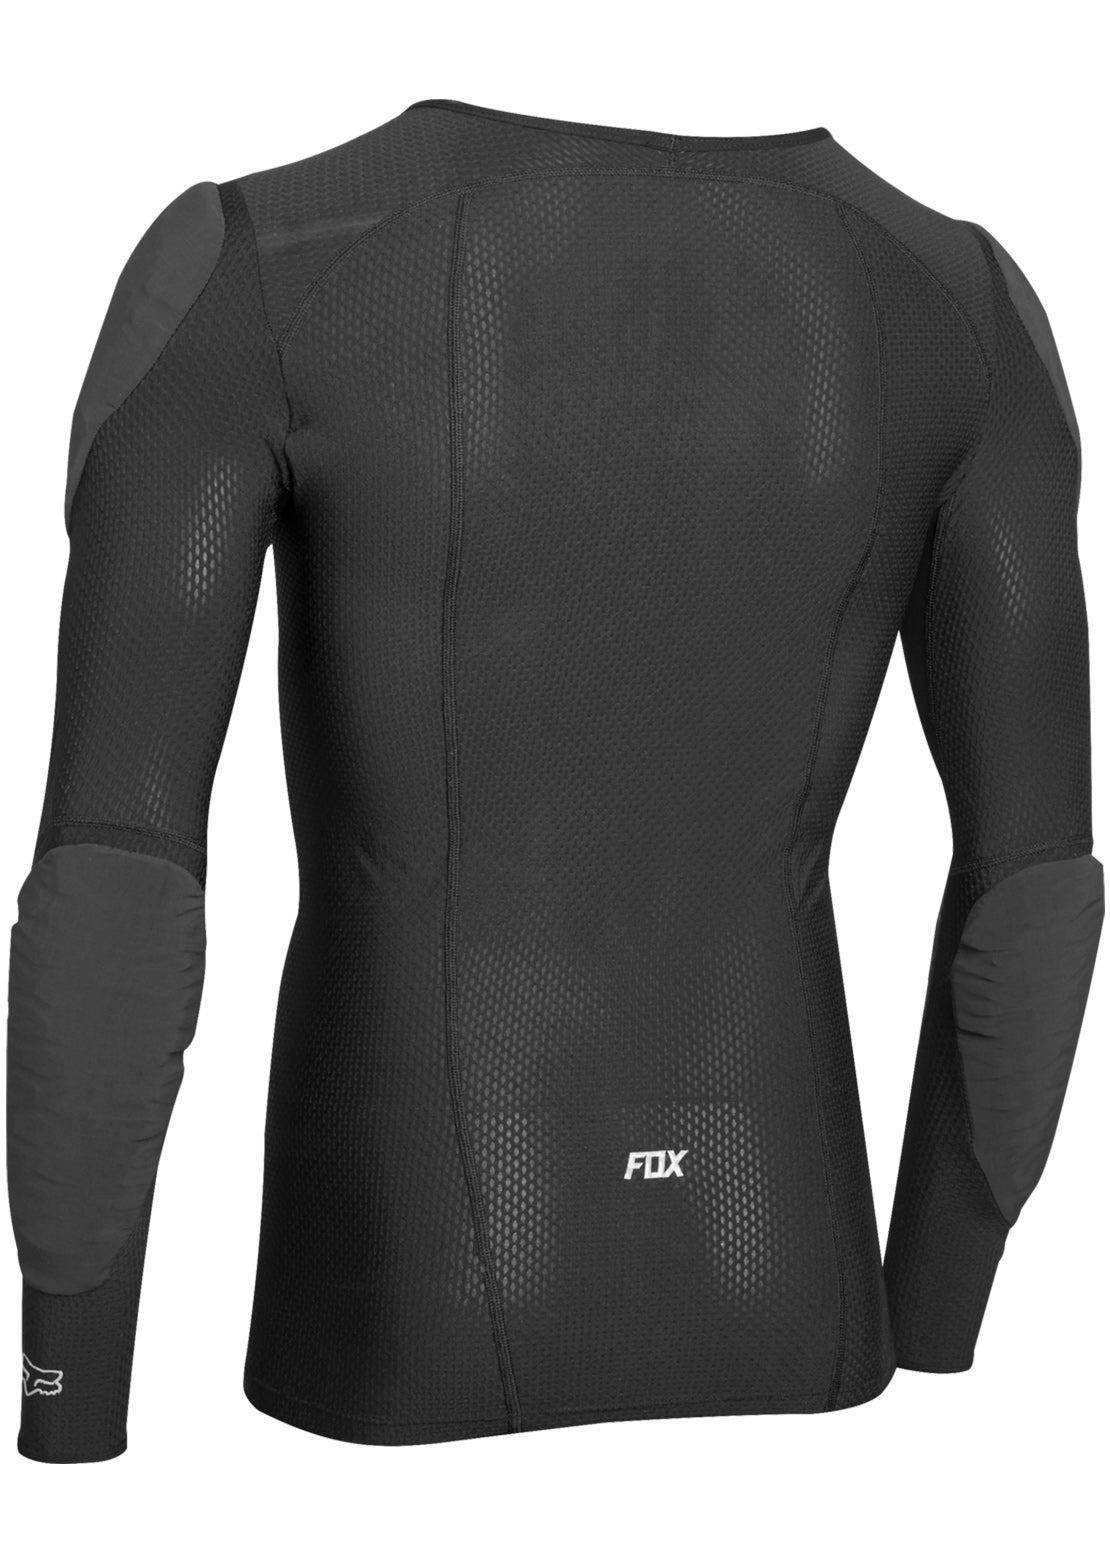 Fox Men's Base Frame 3D0 Longsleeve Protective Bike Jersey Black